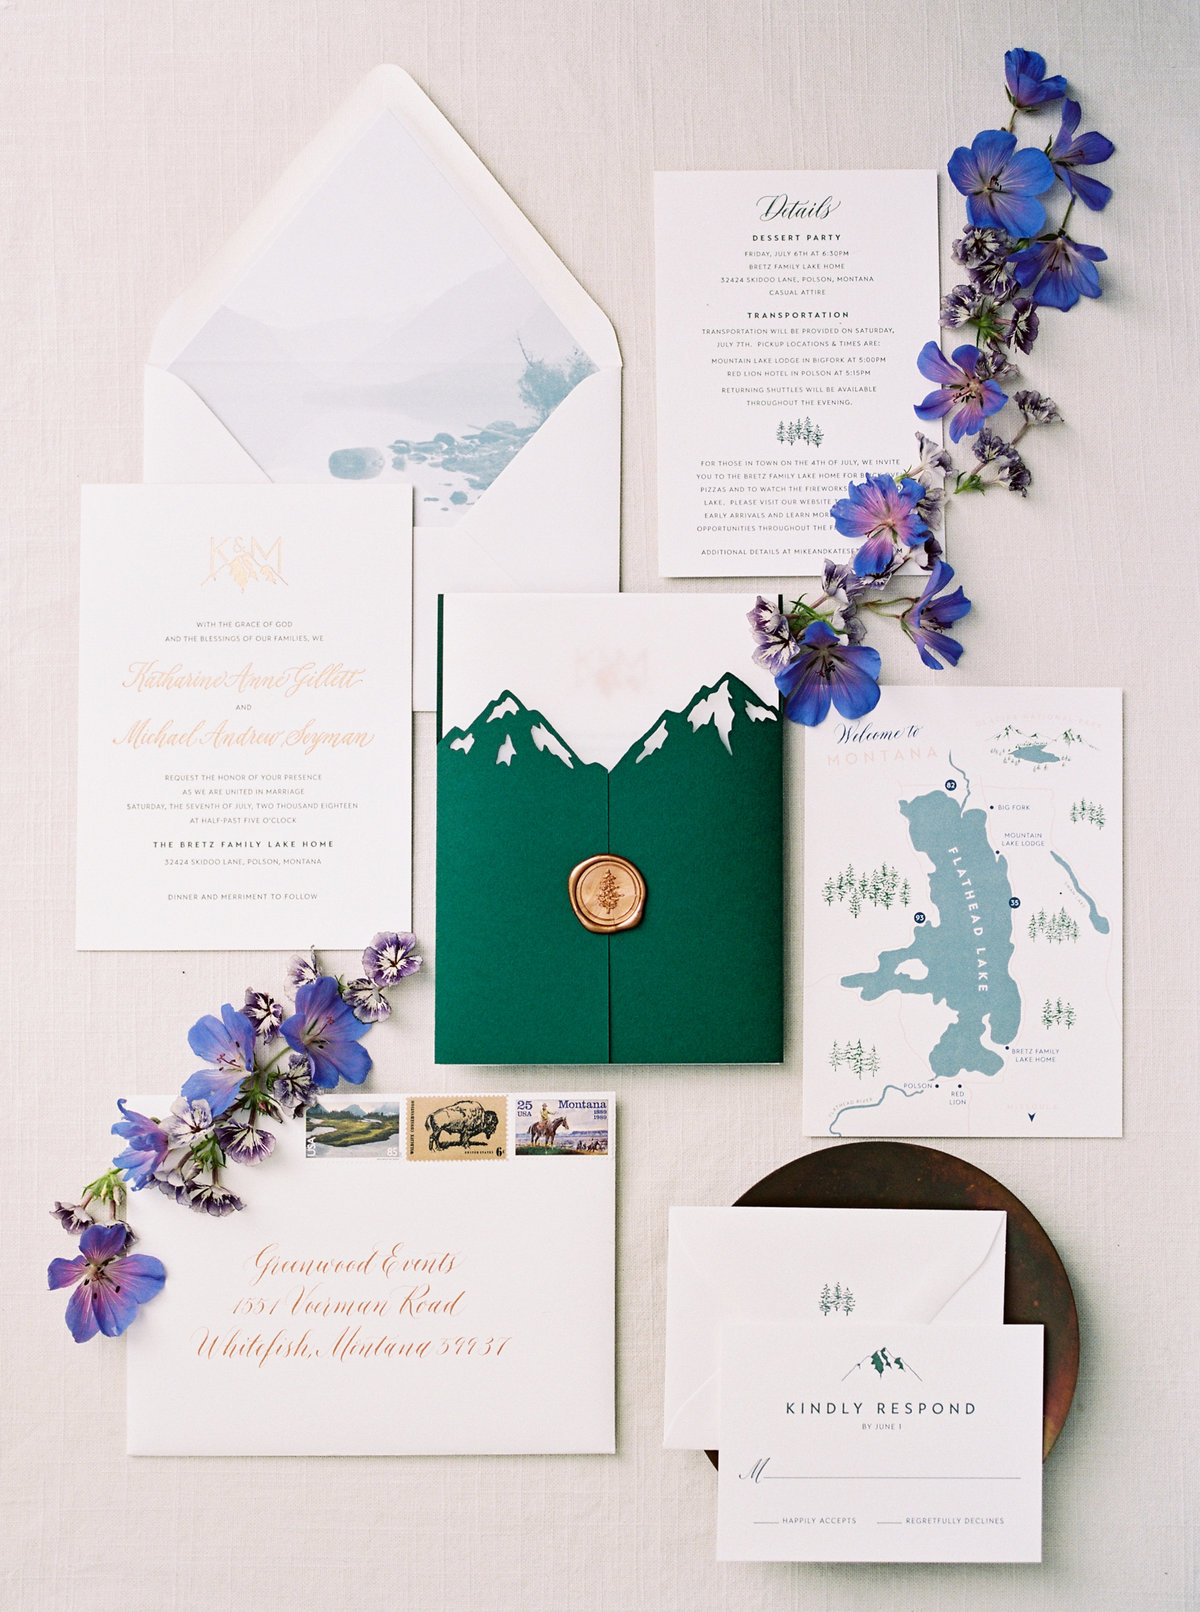 KateandMike_Wedding_0174